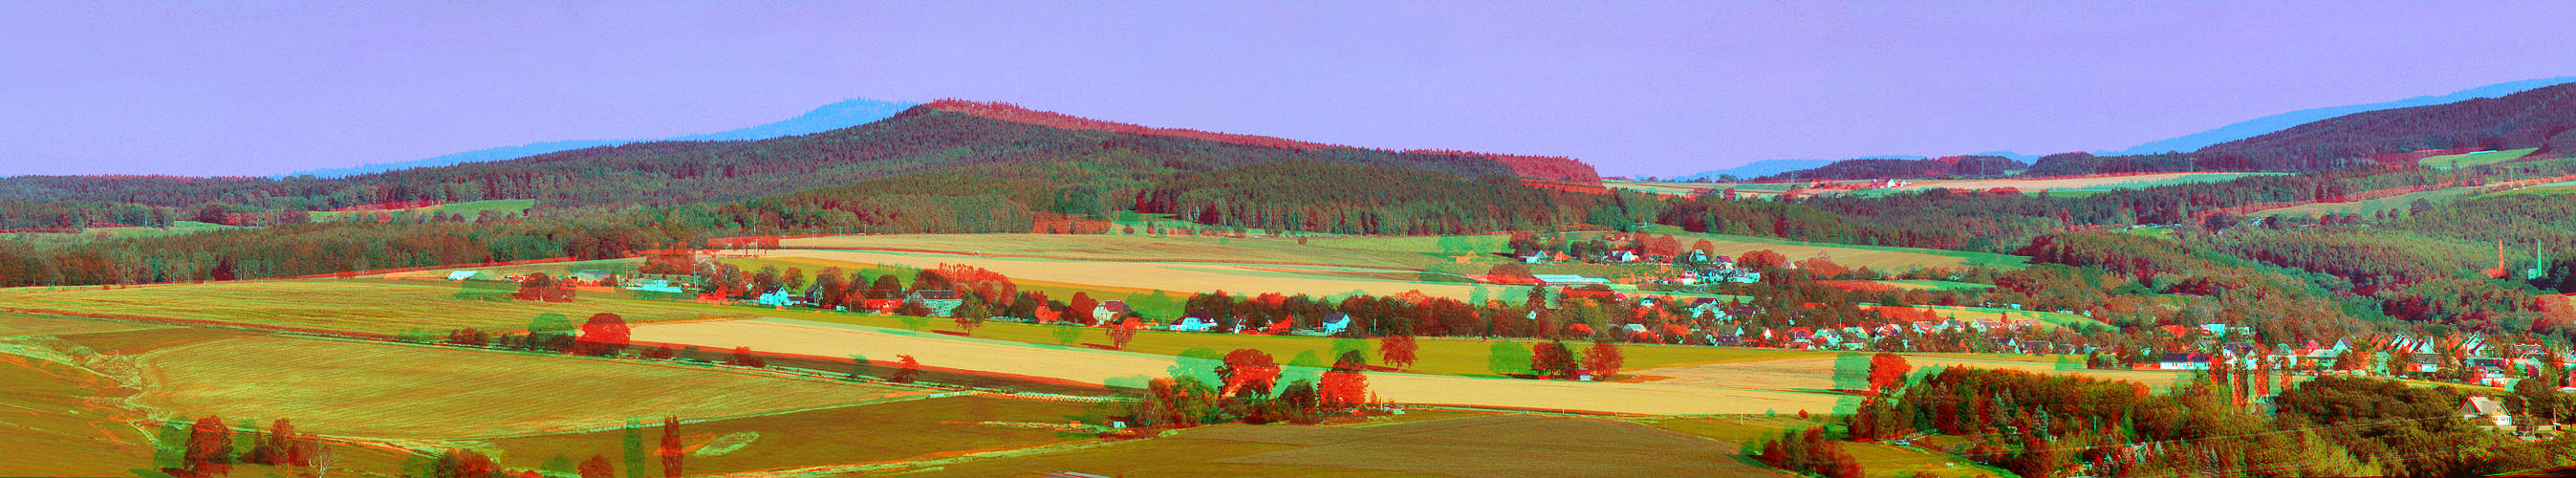 Stereoscopic Panorama  3D                              Size: 2600x500 Pixel